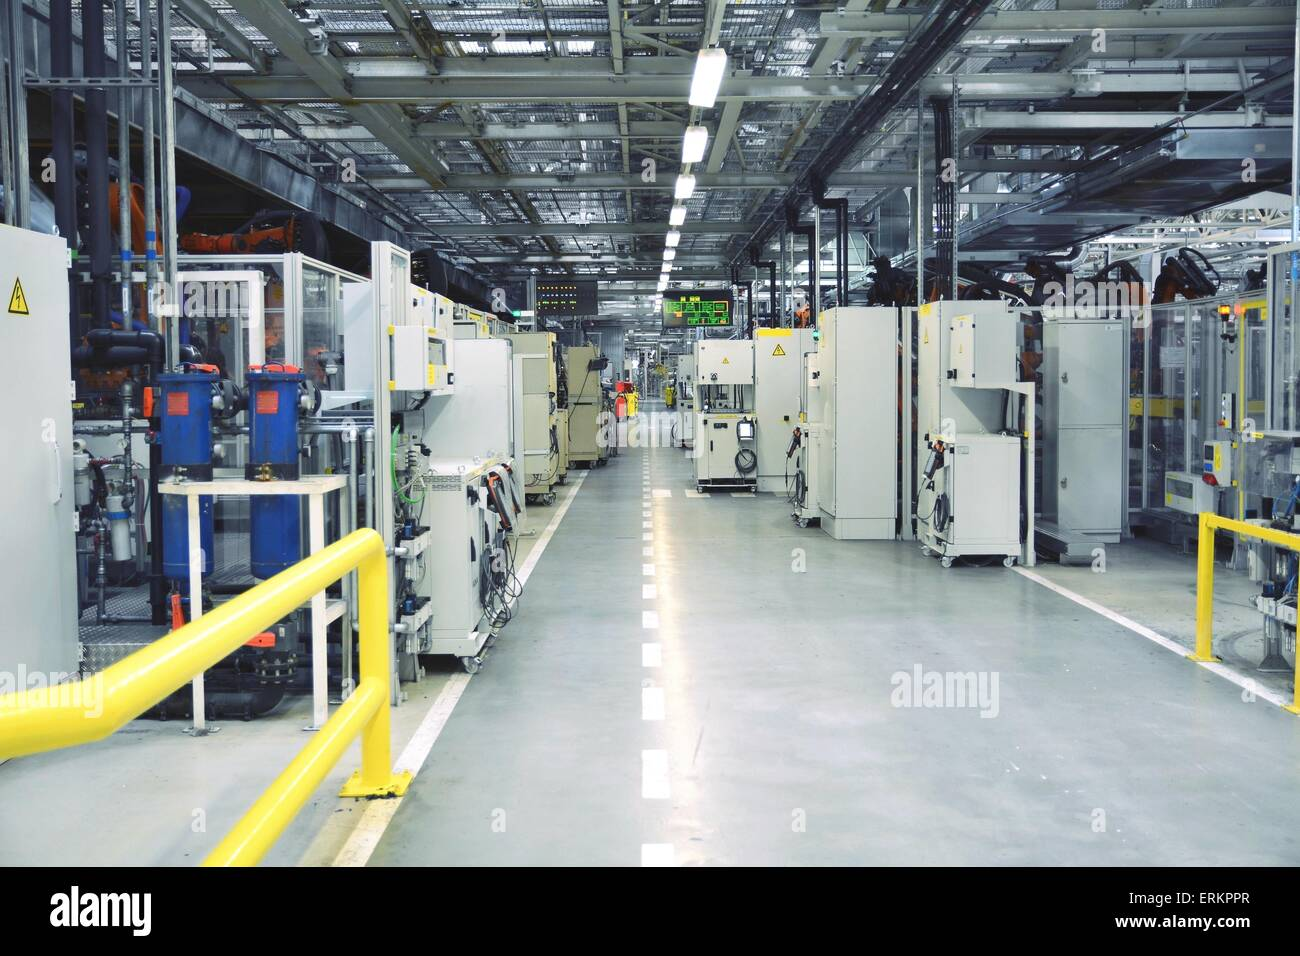 Industrial interior of the factory with computers and robots. - Stock Image